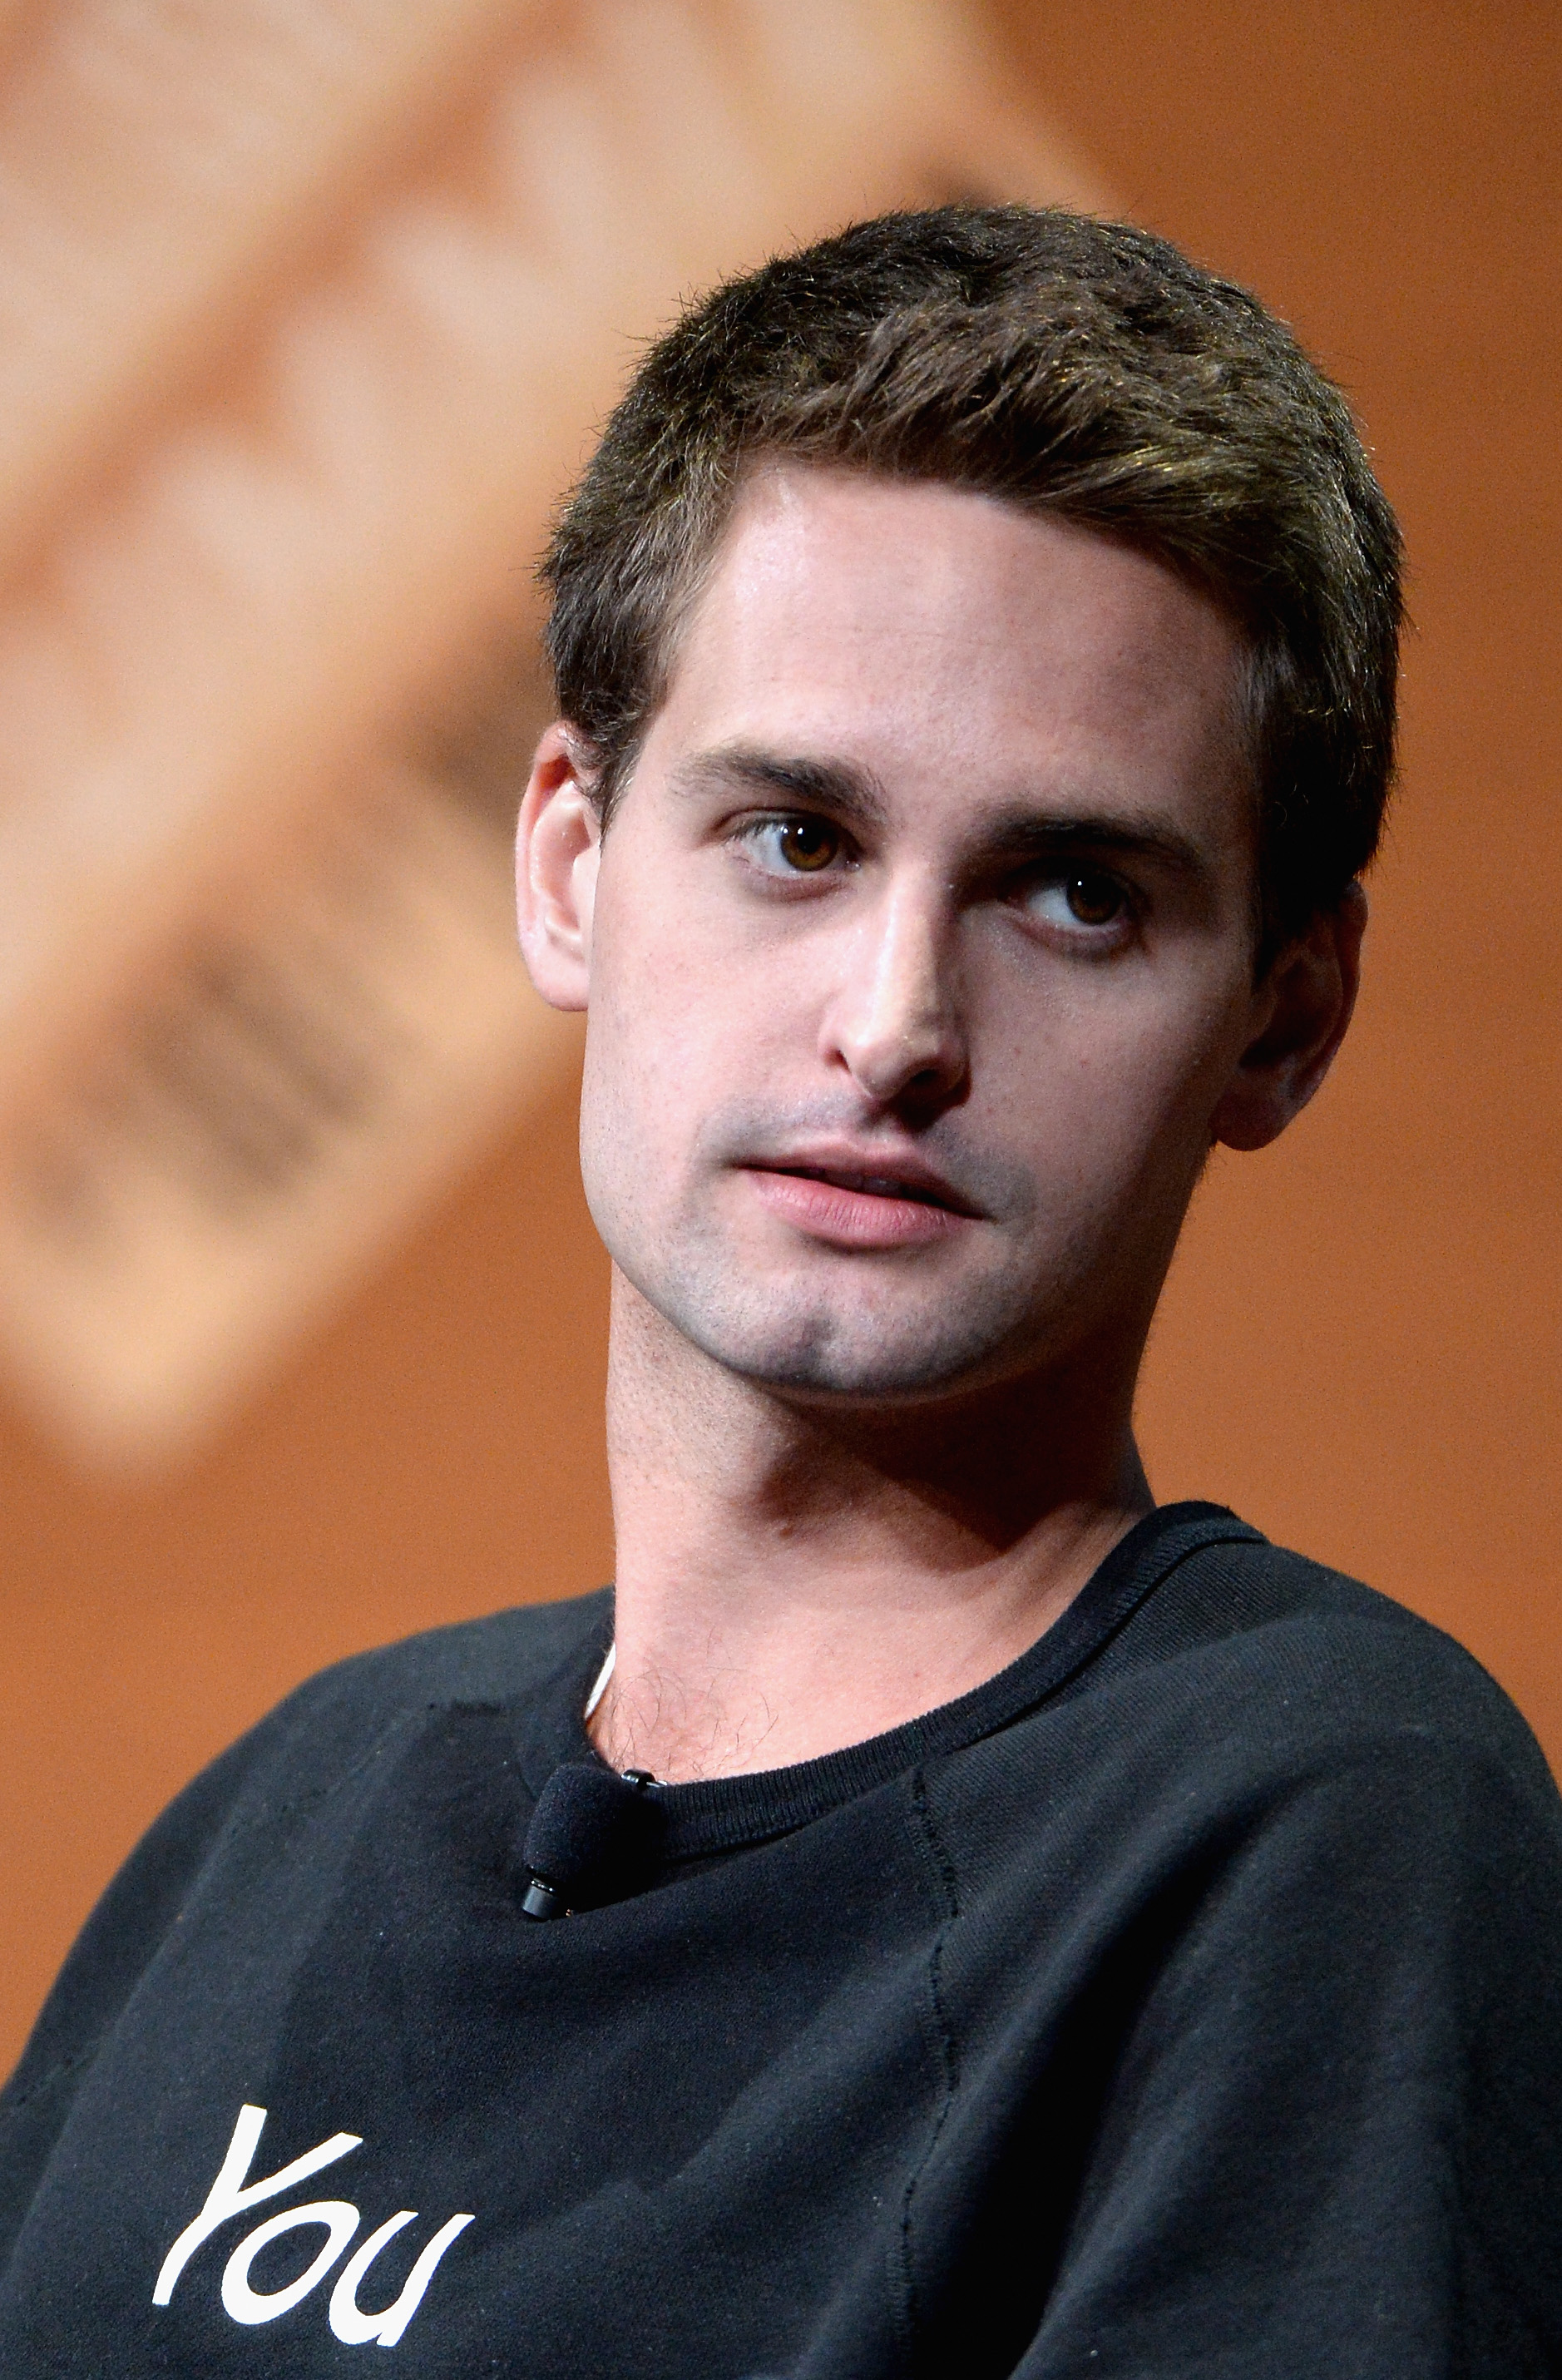 Evan Spiegel during  Disrupting Information and Communication  at the Vanity Fair New Establishment Summit in San Francisco on Oct. 8, 2014.